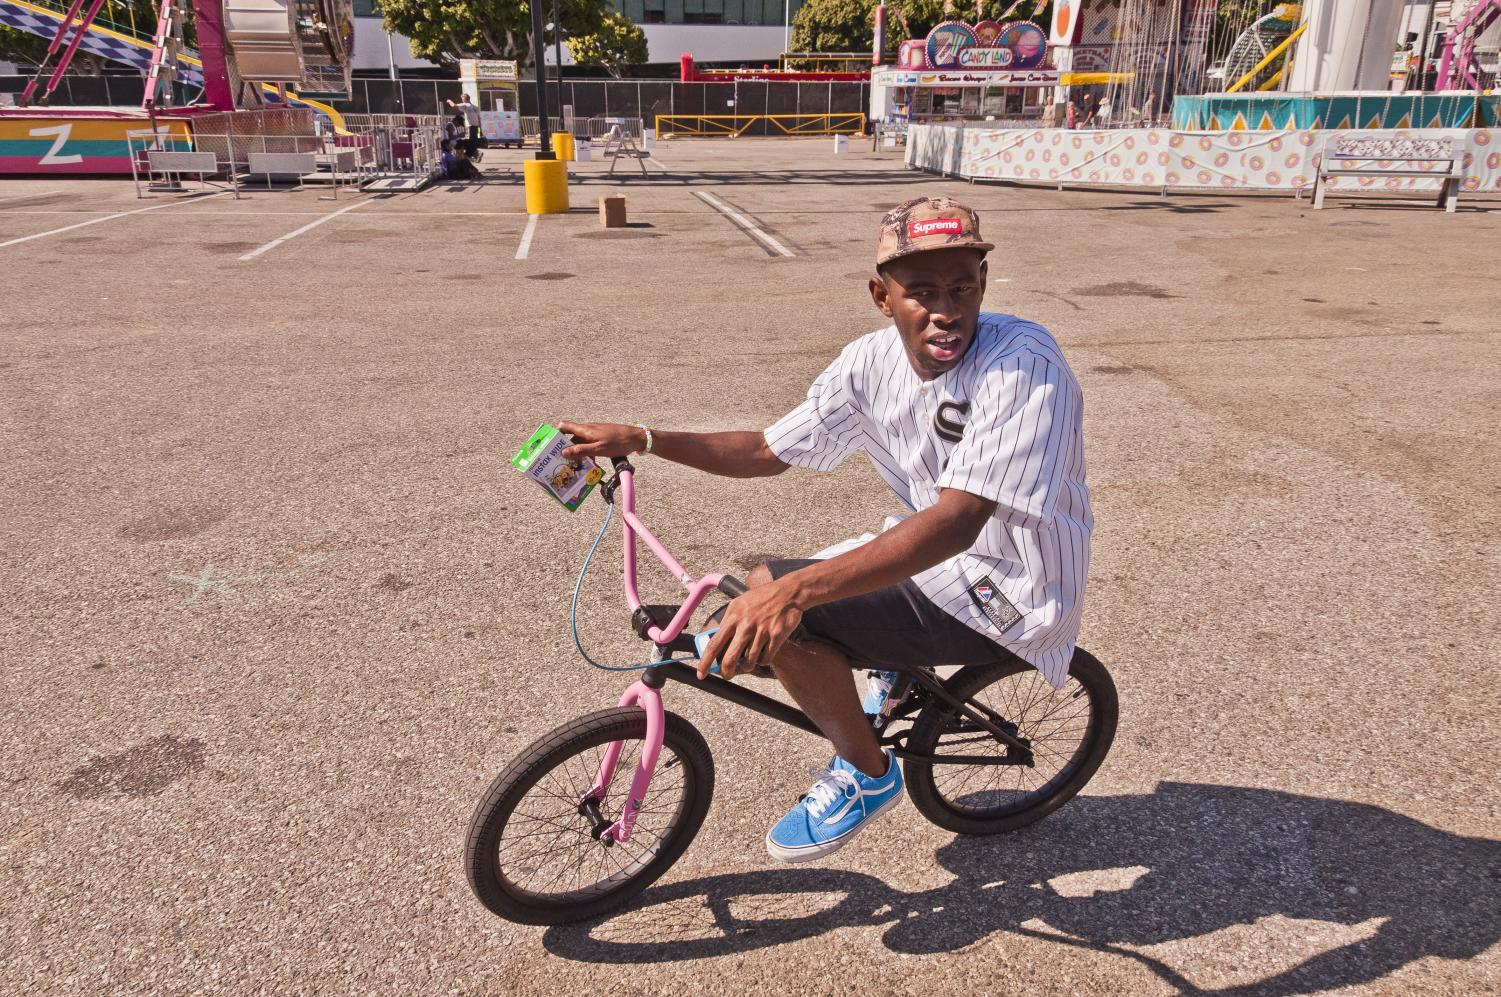 The soundtrack included songs by song artist Tyler The Creator. Photo courtesy of Wikipedia.